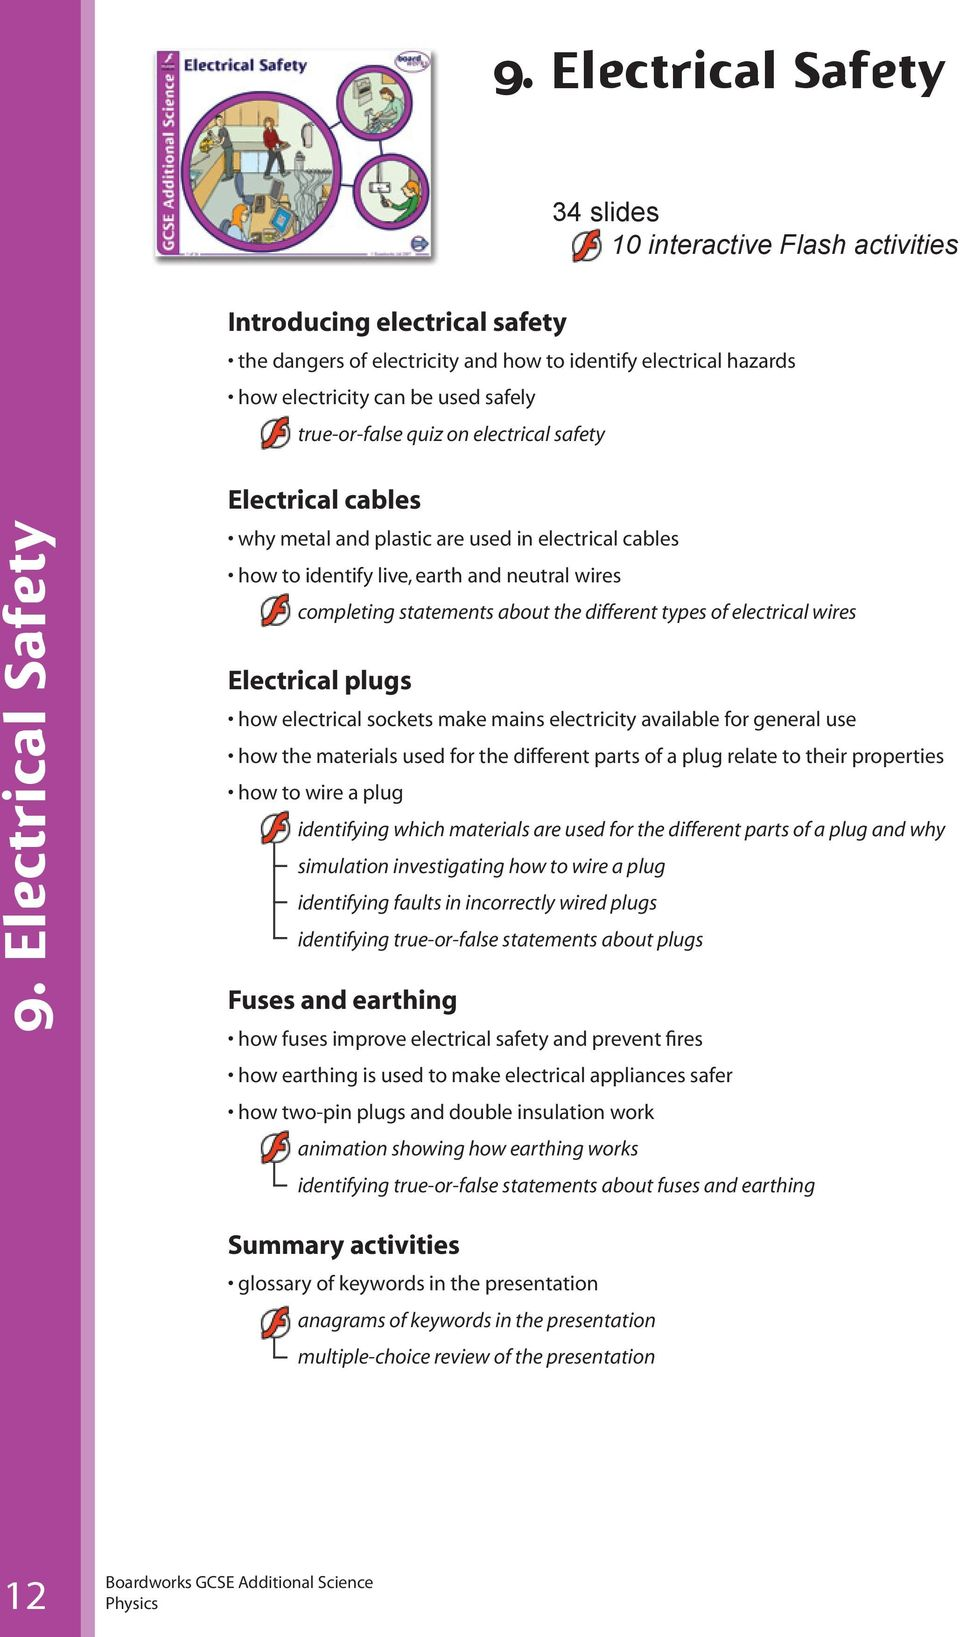 Electrical Safety Electrical cables why metal and plastic are used in electrical cables how to identify live, earth and neutral wires completing statements about the different types of electrical